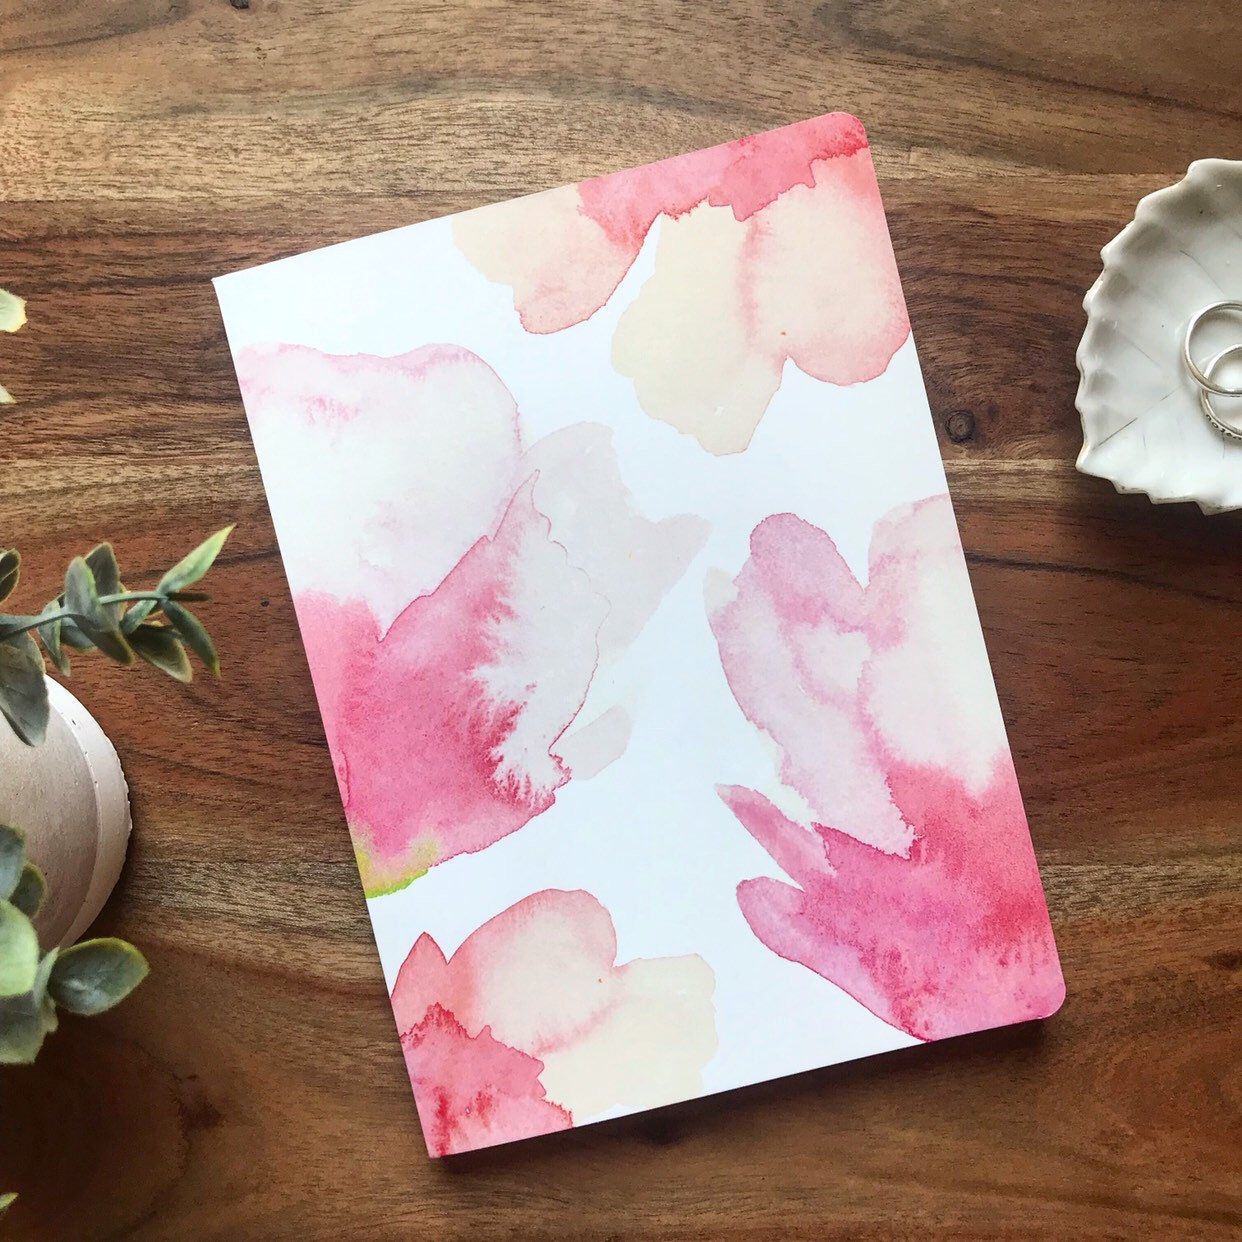 Soft Covered Journal Pink Watercolor Floral Notebook In 2019